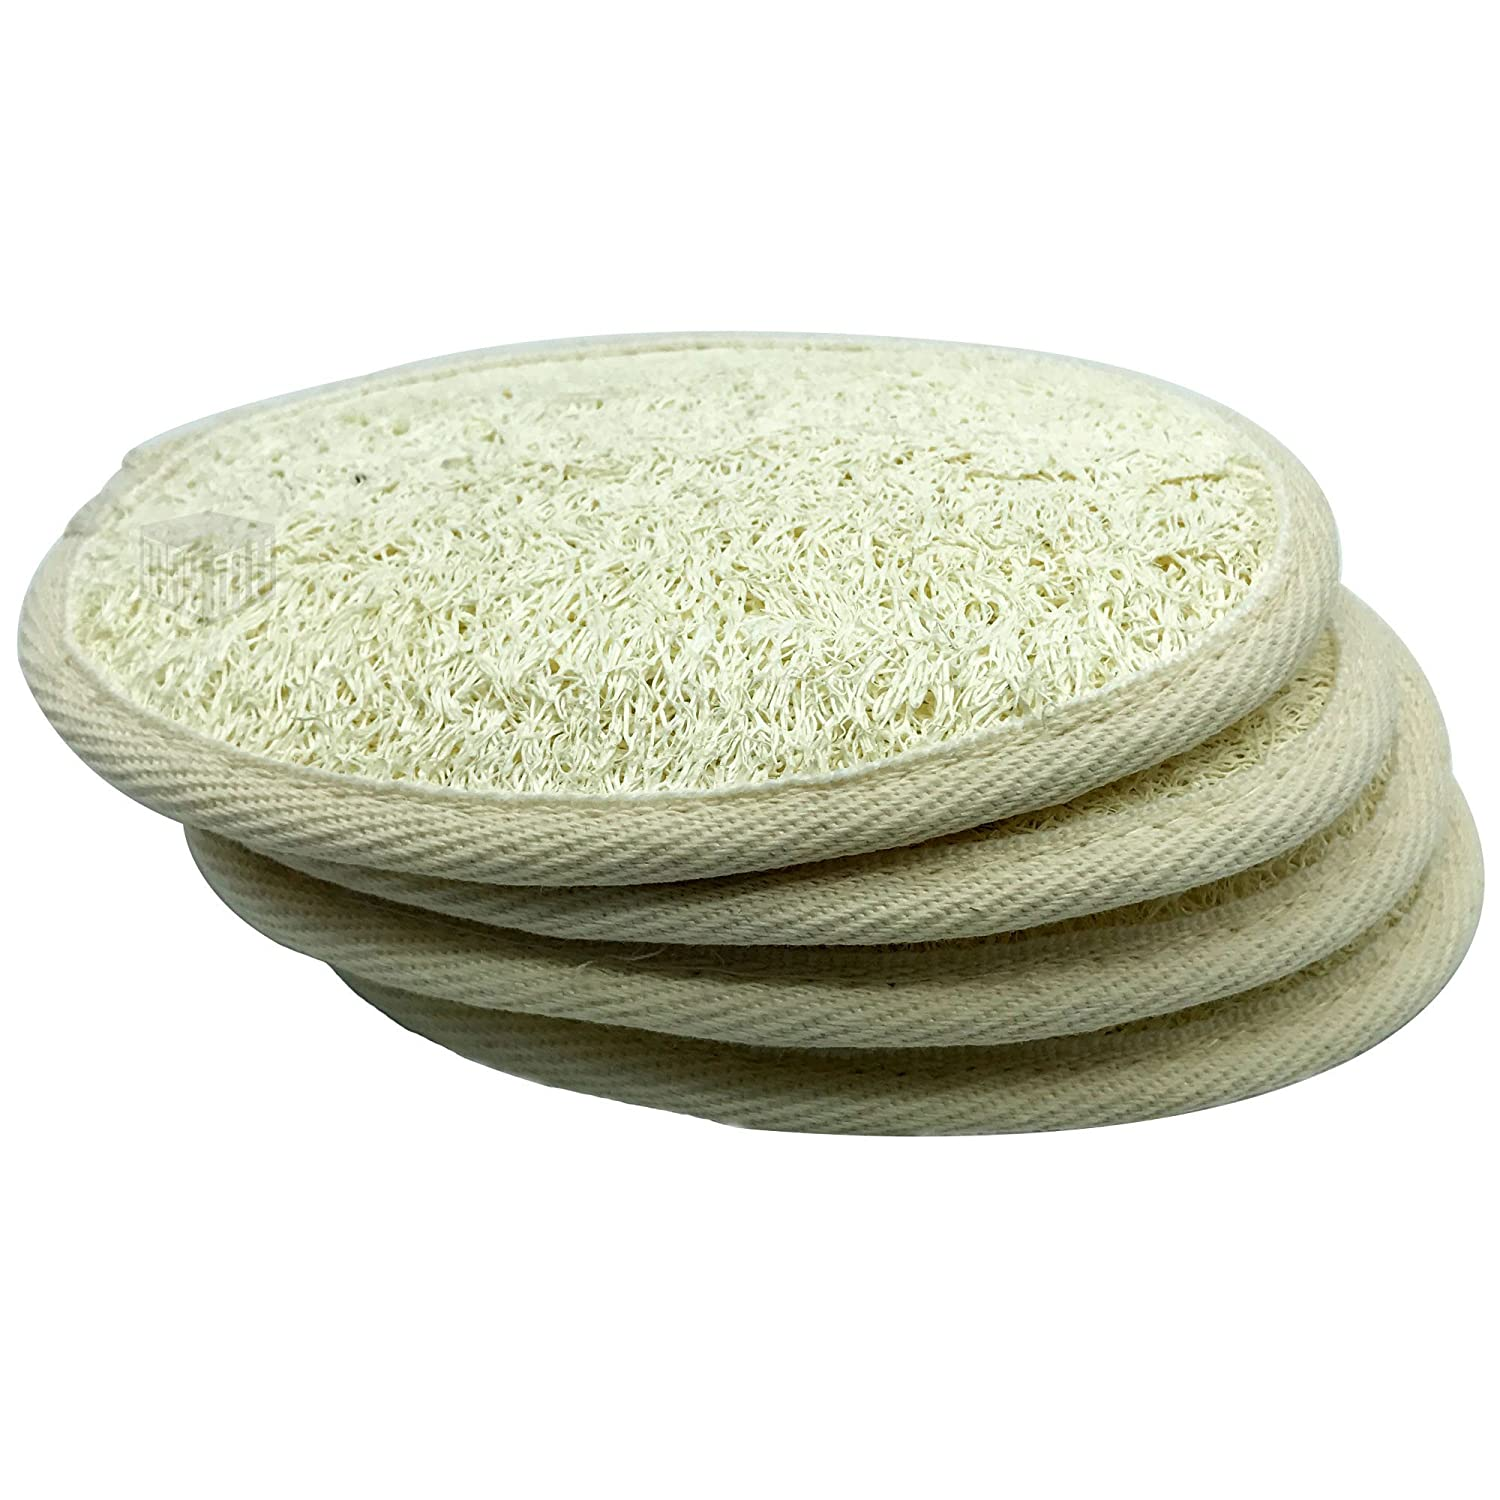 MAYMII·HOME 100% NATURE 6 Pack of (approx 4-5 length) Organic Loofahs Loofah Spa Exfoliating Scrubber natural Luffa Body Wash Sponge Remove Dead Skin Made Soap